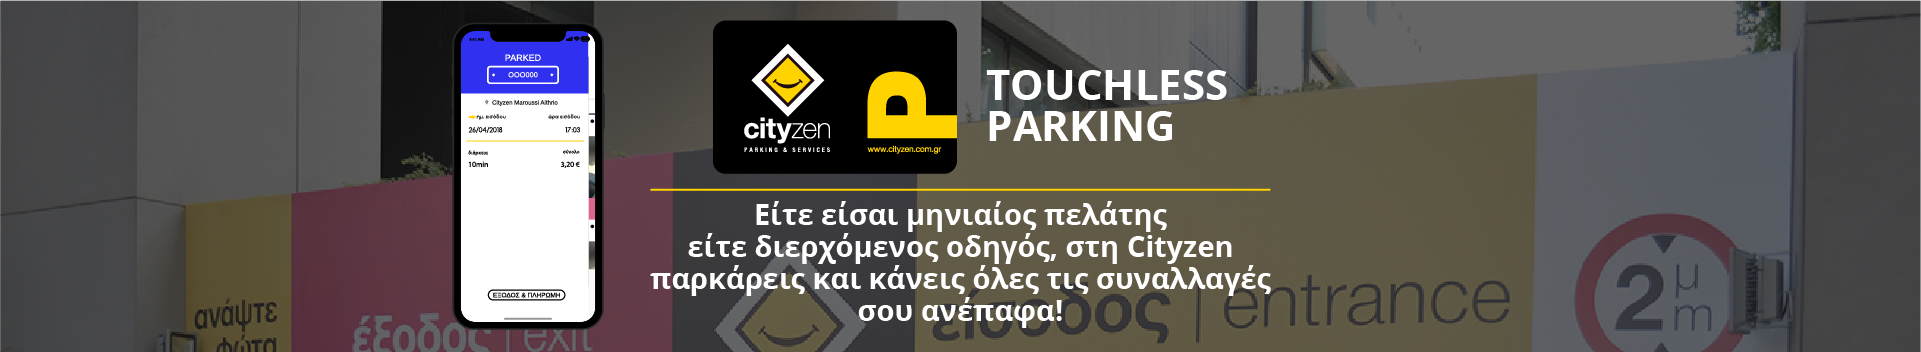 touchless_GR